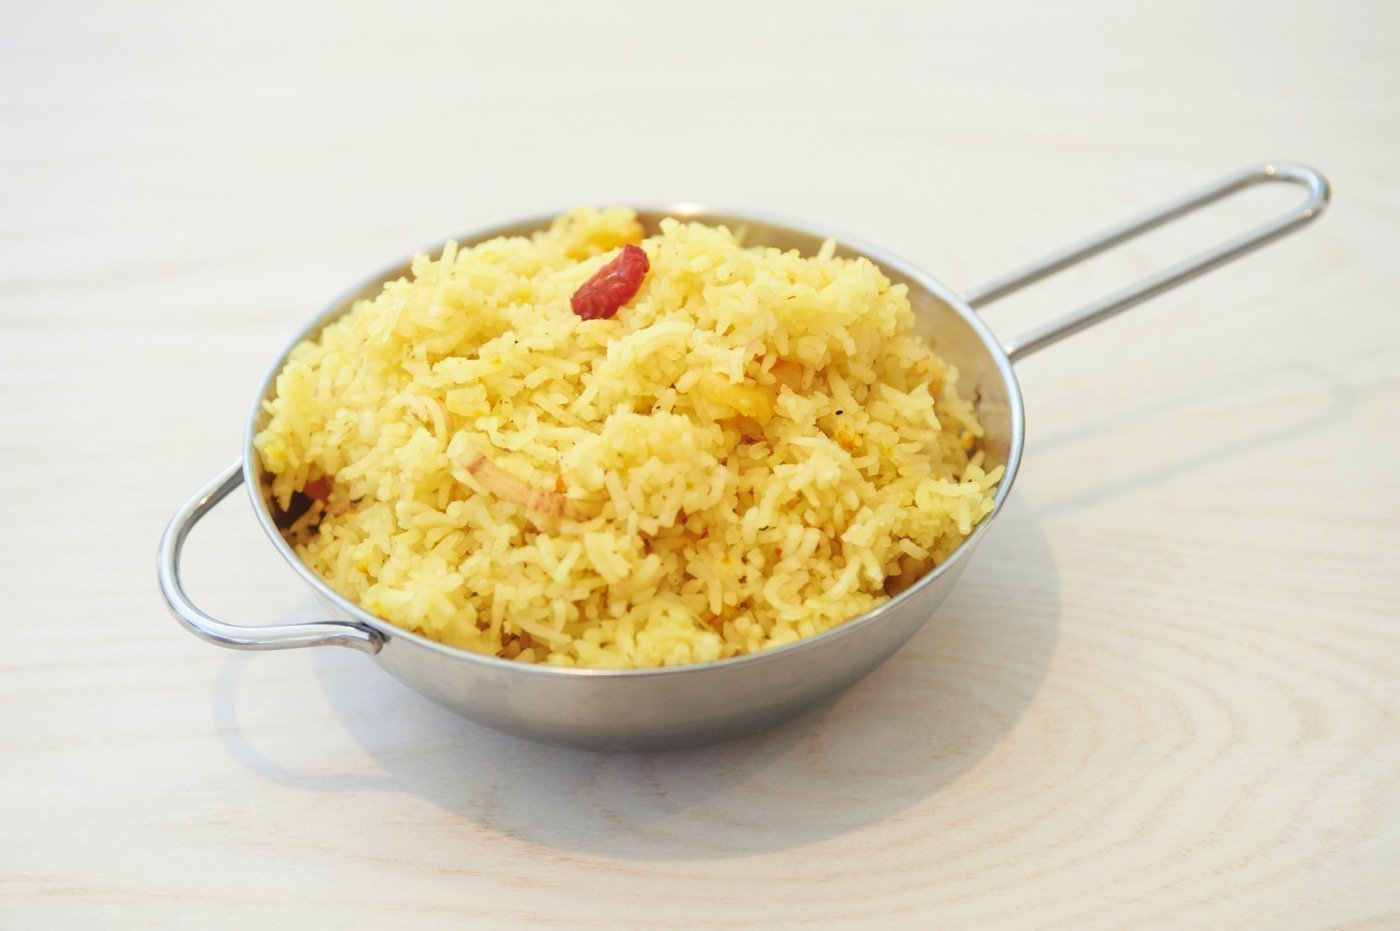 Aromatic rice with saffron and pine nuts